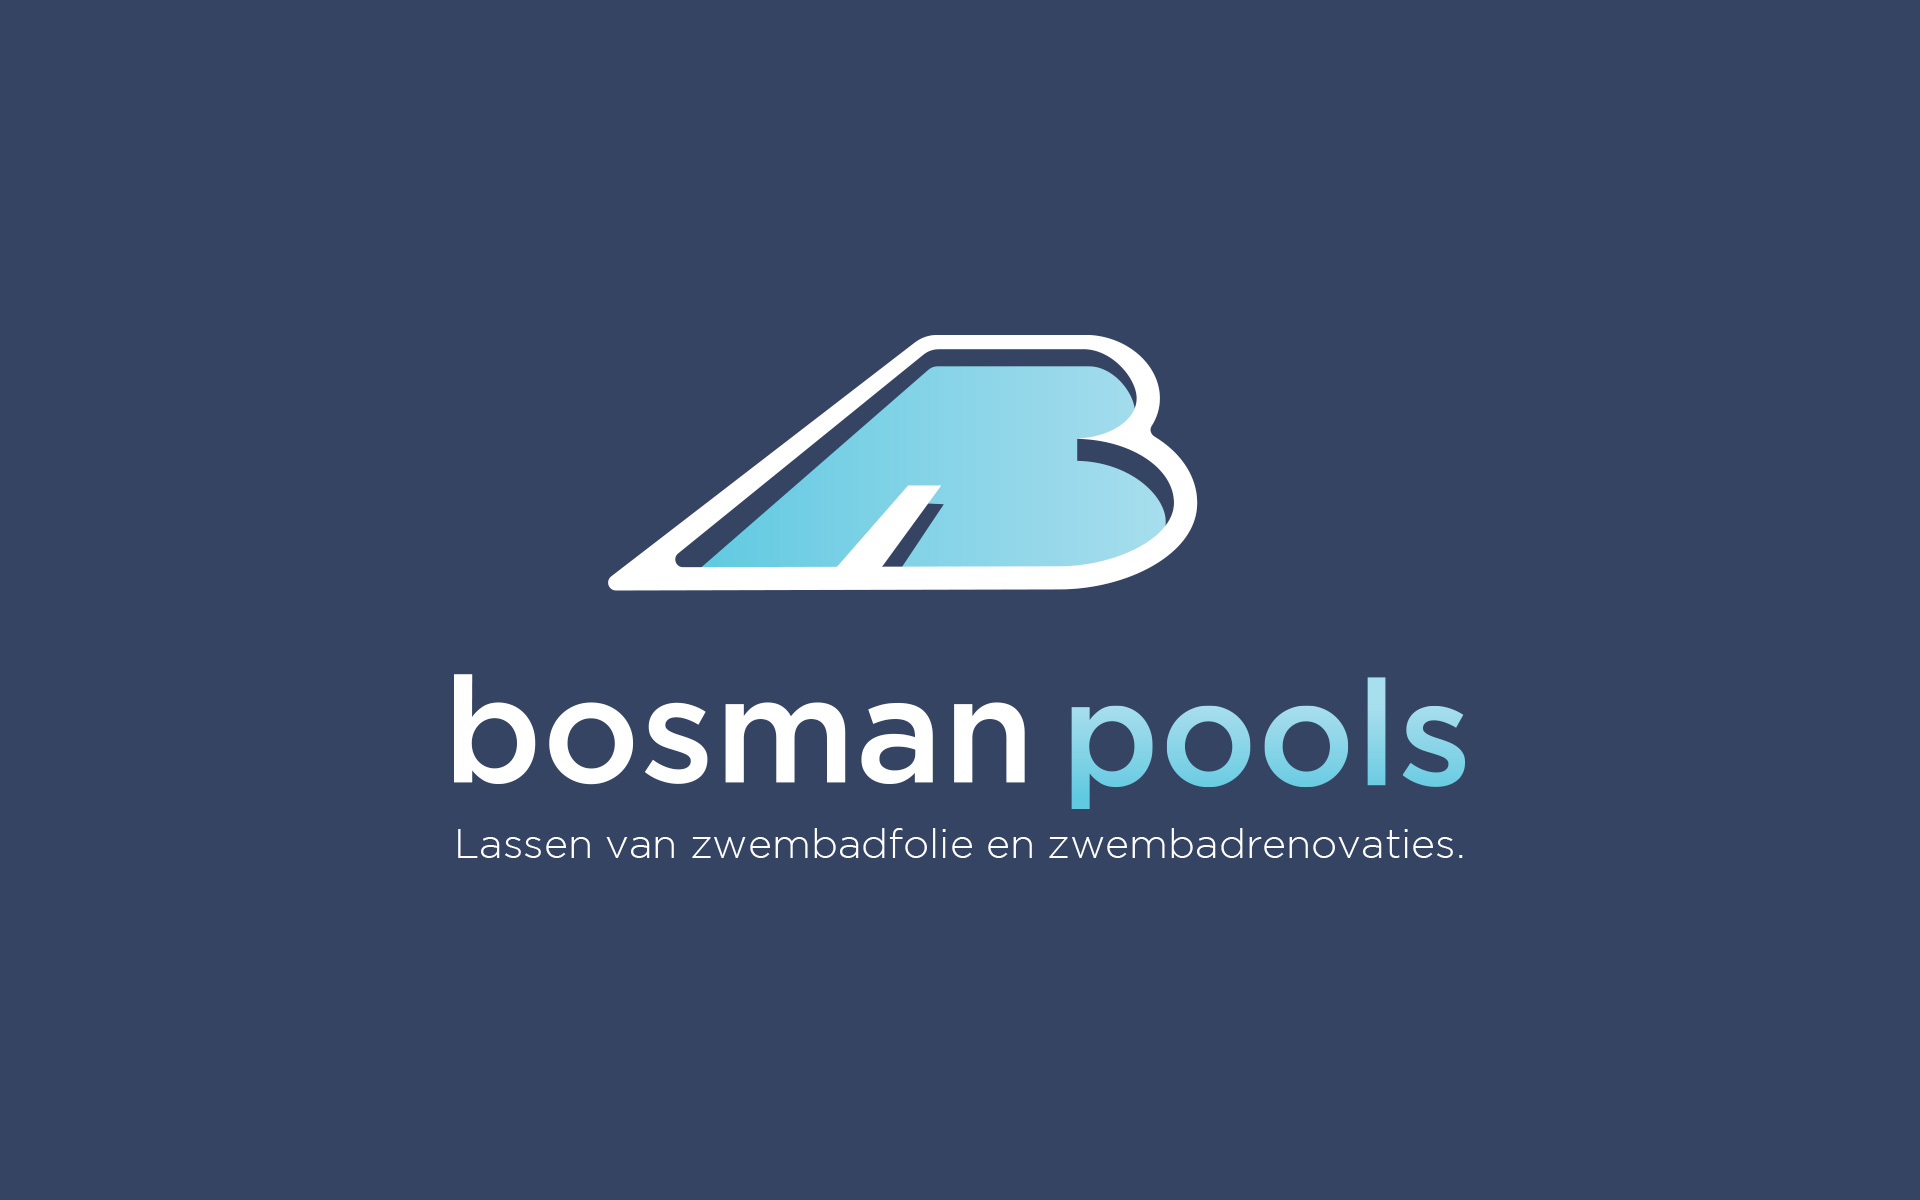 https://sconcept.be/wp-content/uploads/2019/05/bosmanpools-3.jpg